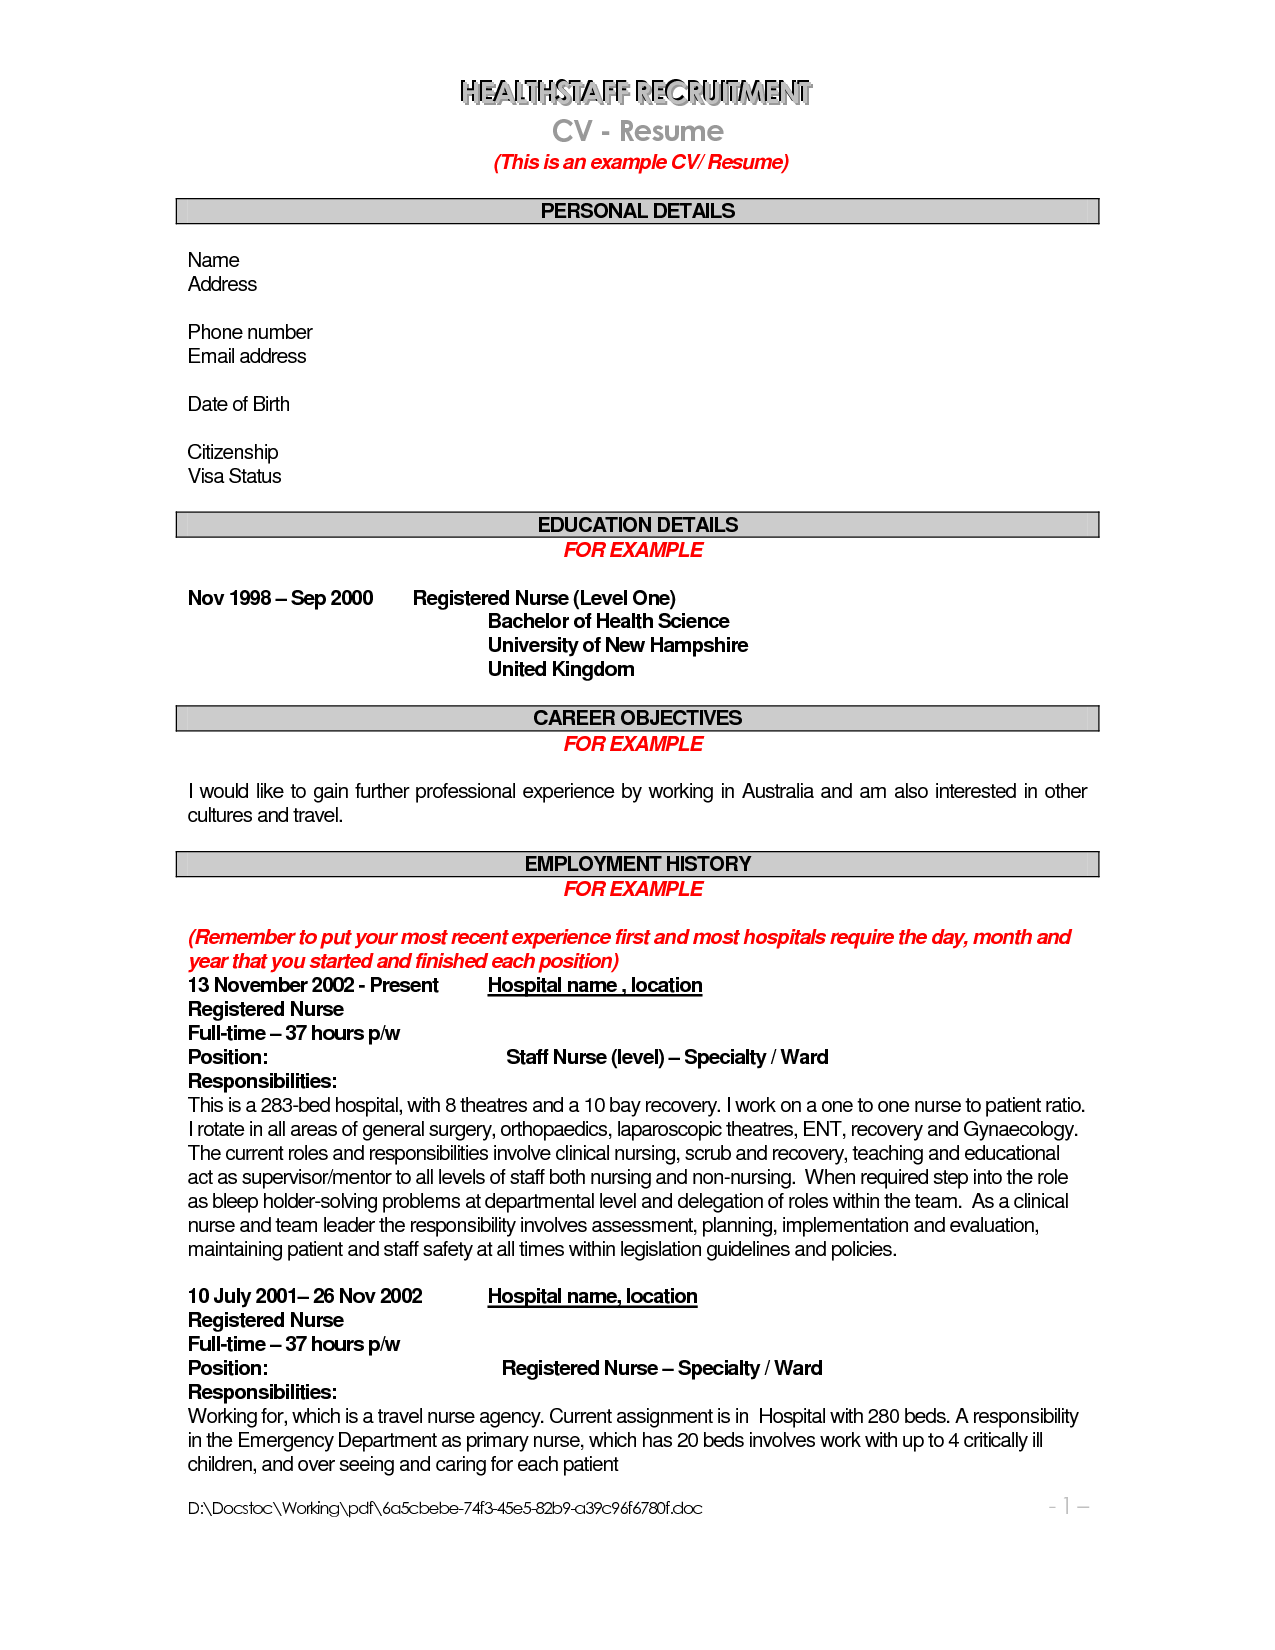 Resume For Hospital Job Resume Samples For Jobs Australia Example Template Free Cover